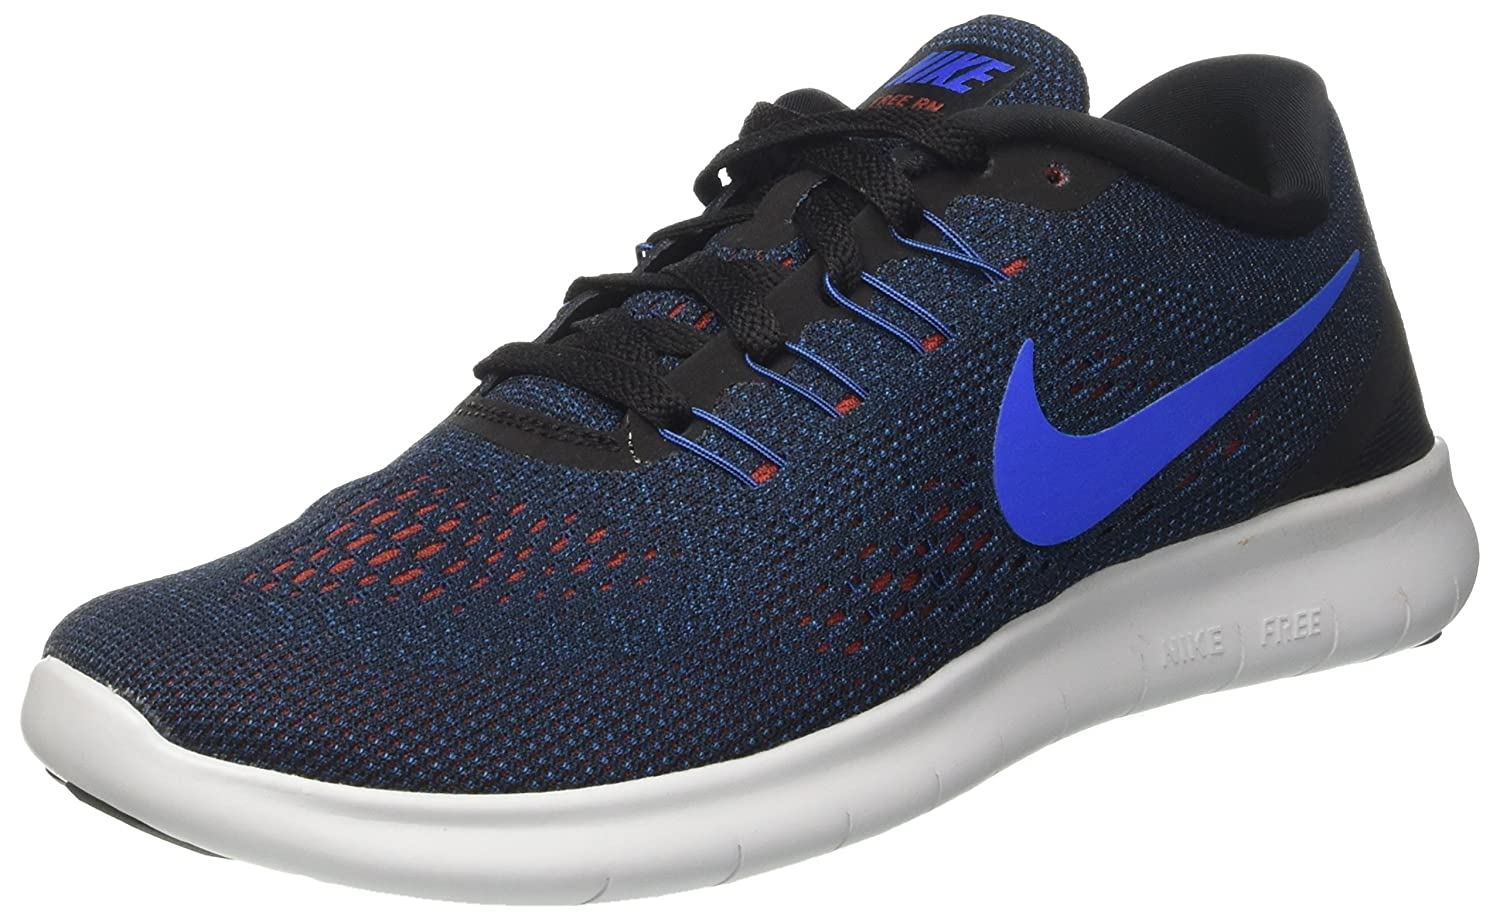 NIKE Men's Free RN Running Shoe B00CJMFIBI 7.5 D(M) US|Team Royal/Black/Dark Cayenne/Soar